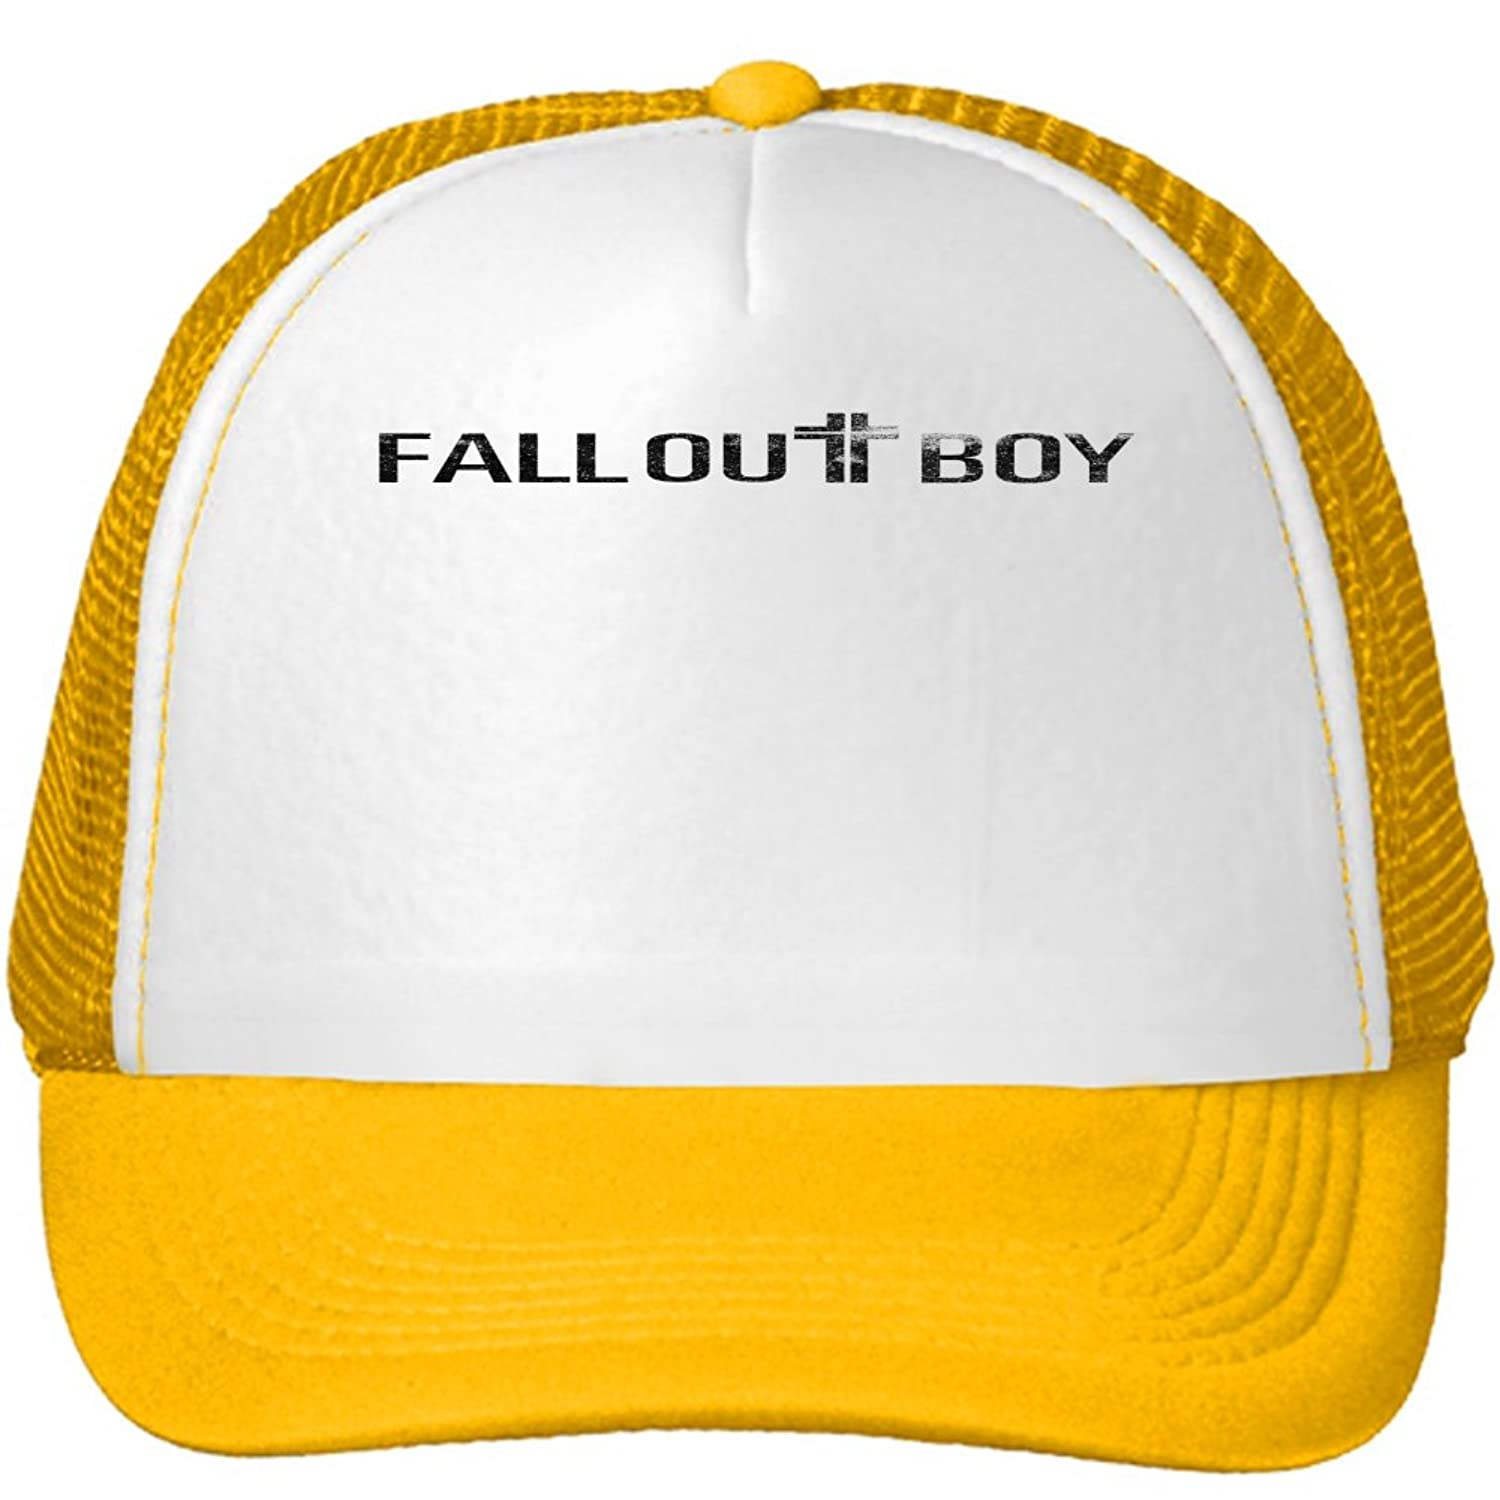 Fall Out Boy Mesh Snapback Trucker Hats Caps